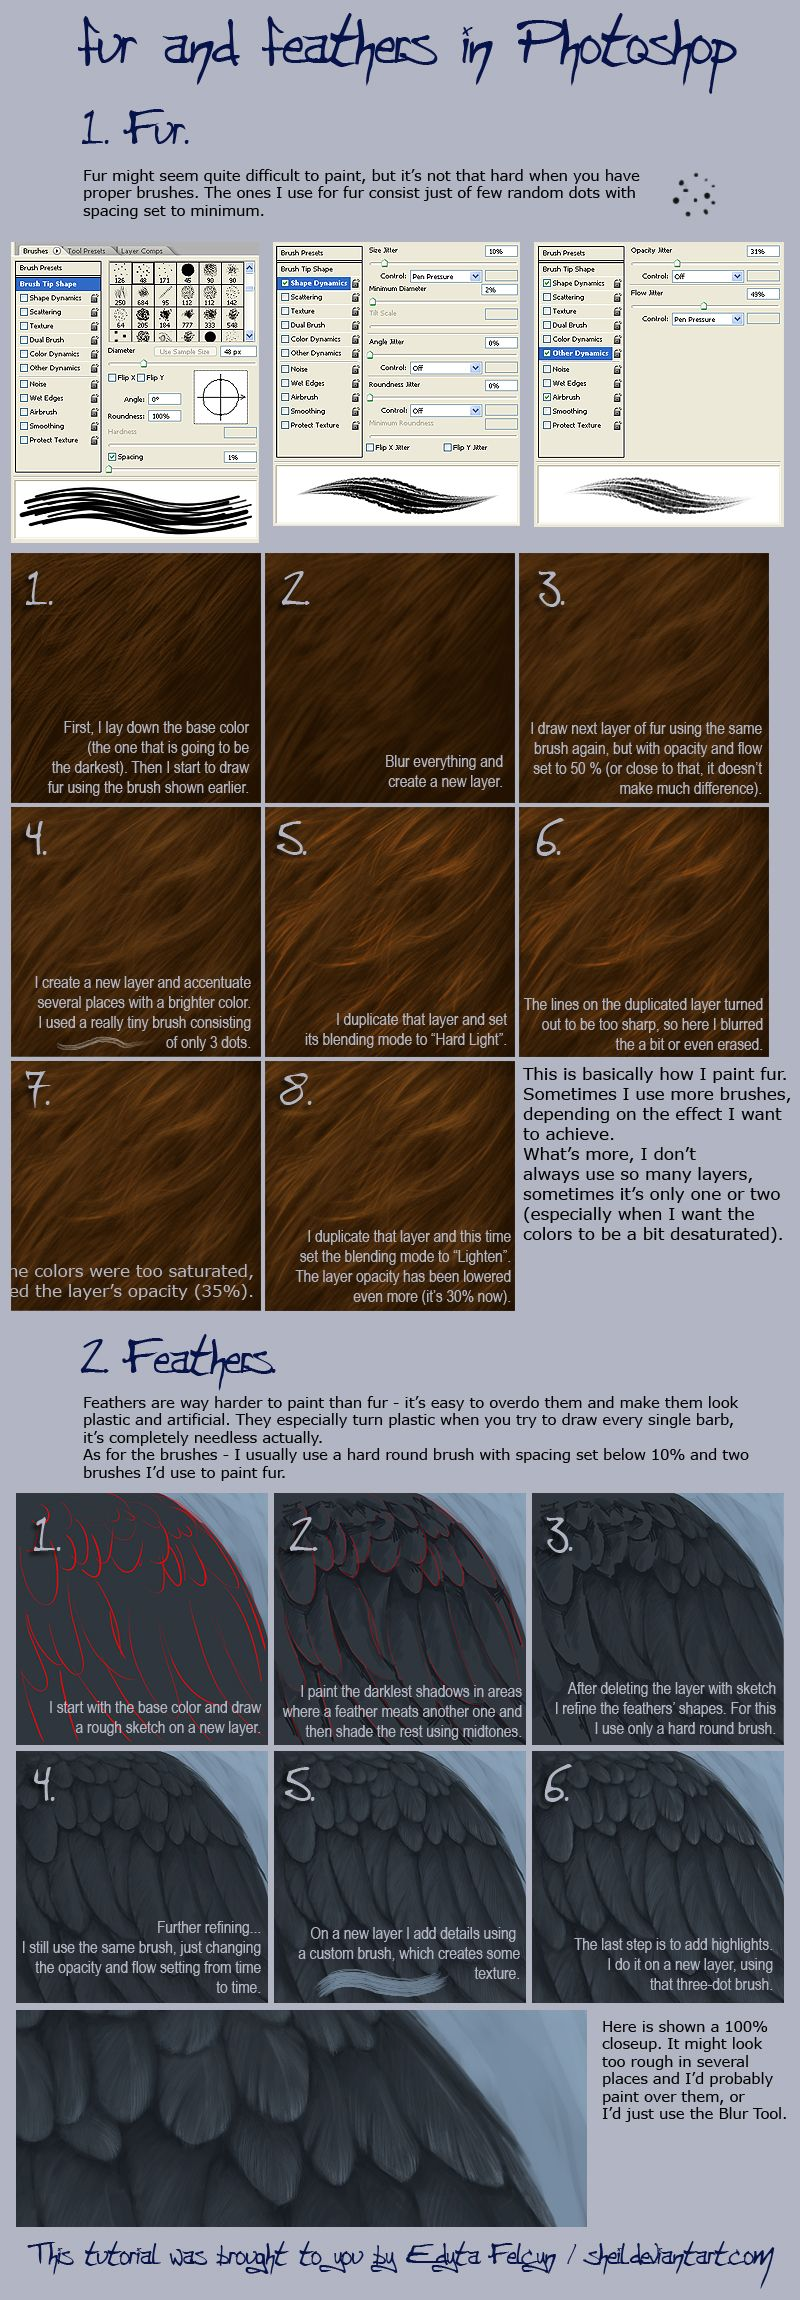 Photoshop Digital Painting Tutorial How To Create Fur And Feathers (best  Fur Tutorial I'